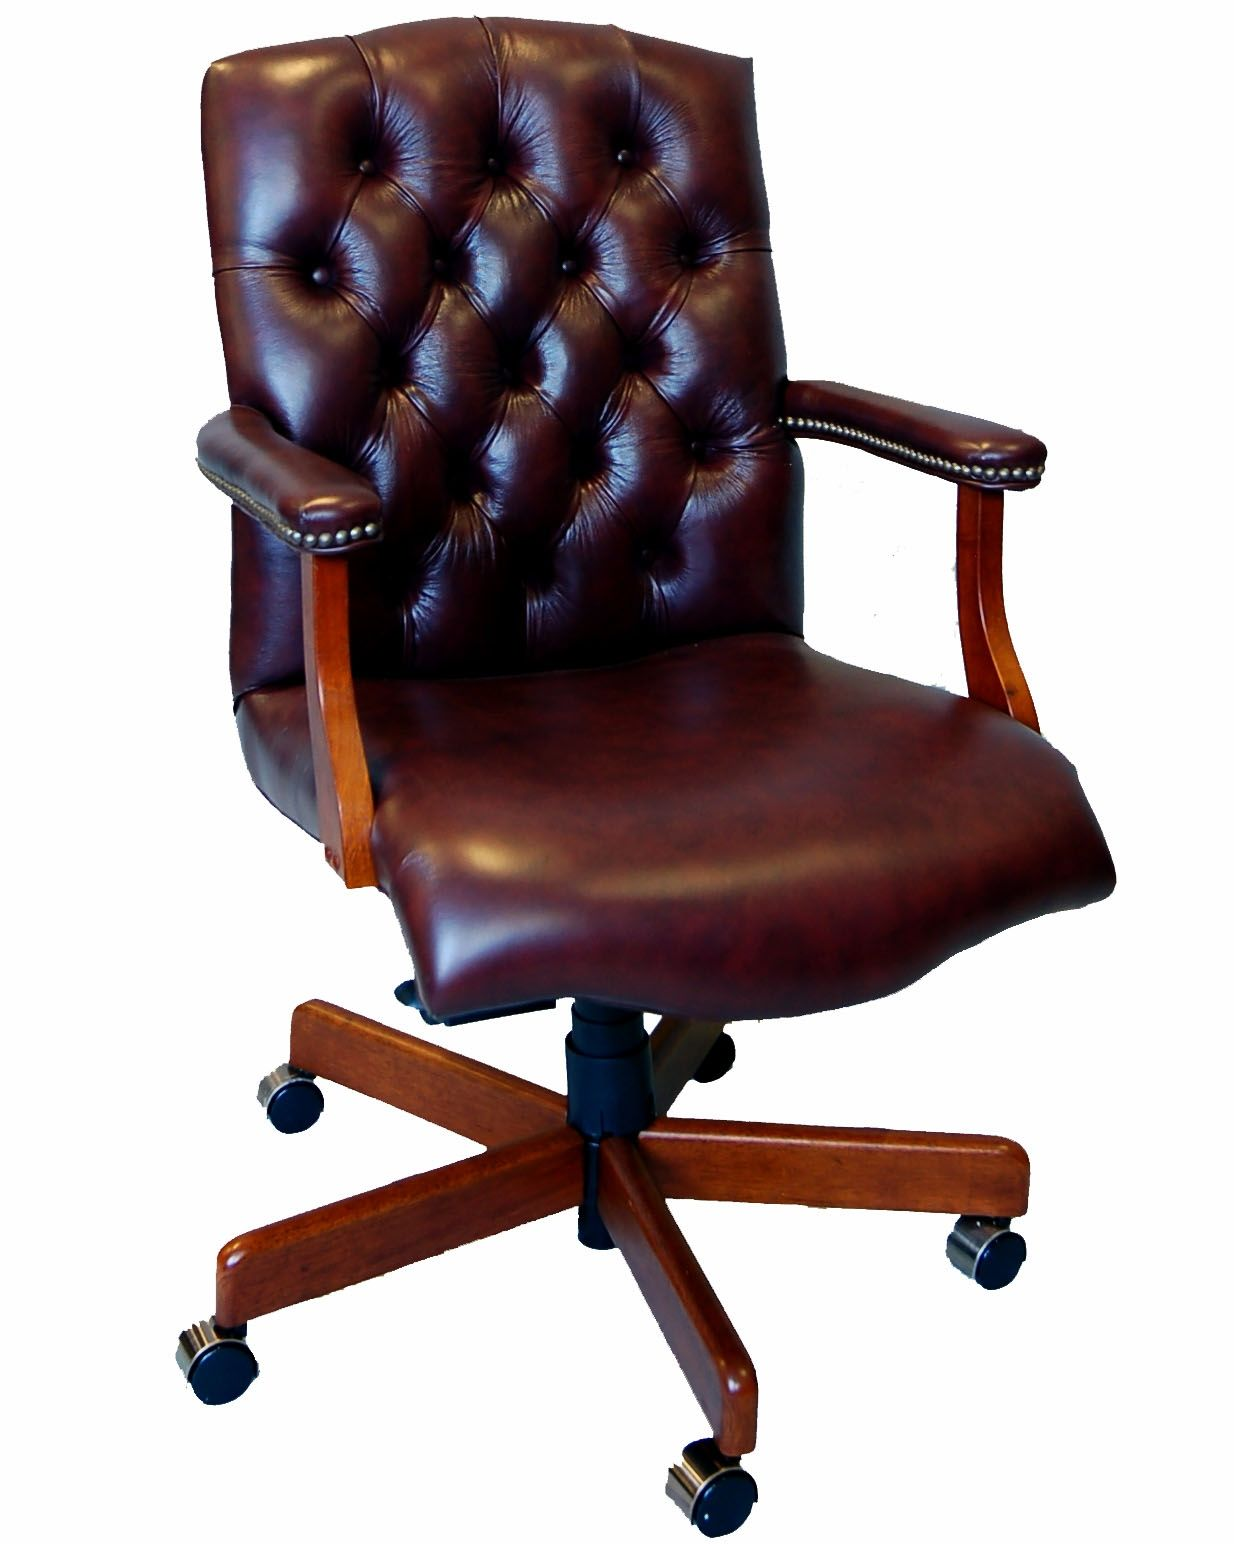 Antique Brown Leather Desk Chair - Antique Brown Leather Desk Chair Http://devintavern.com